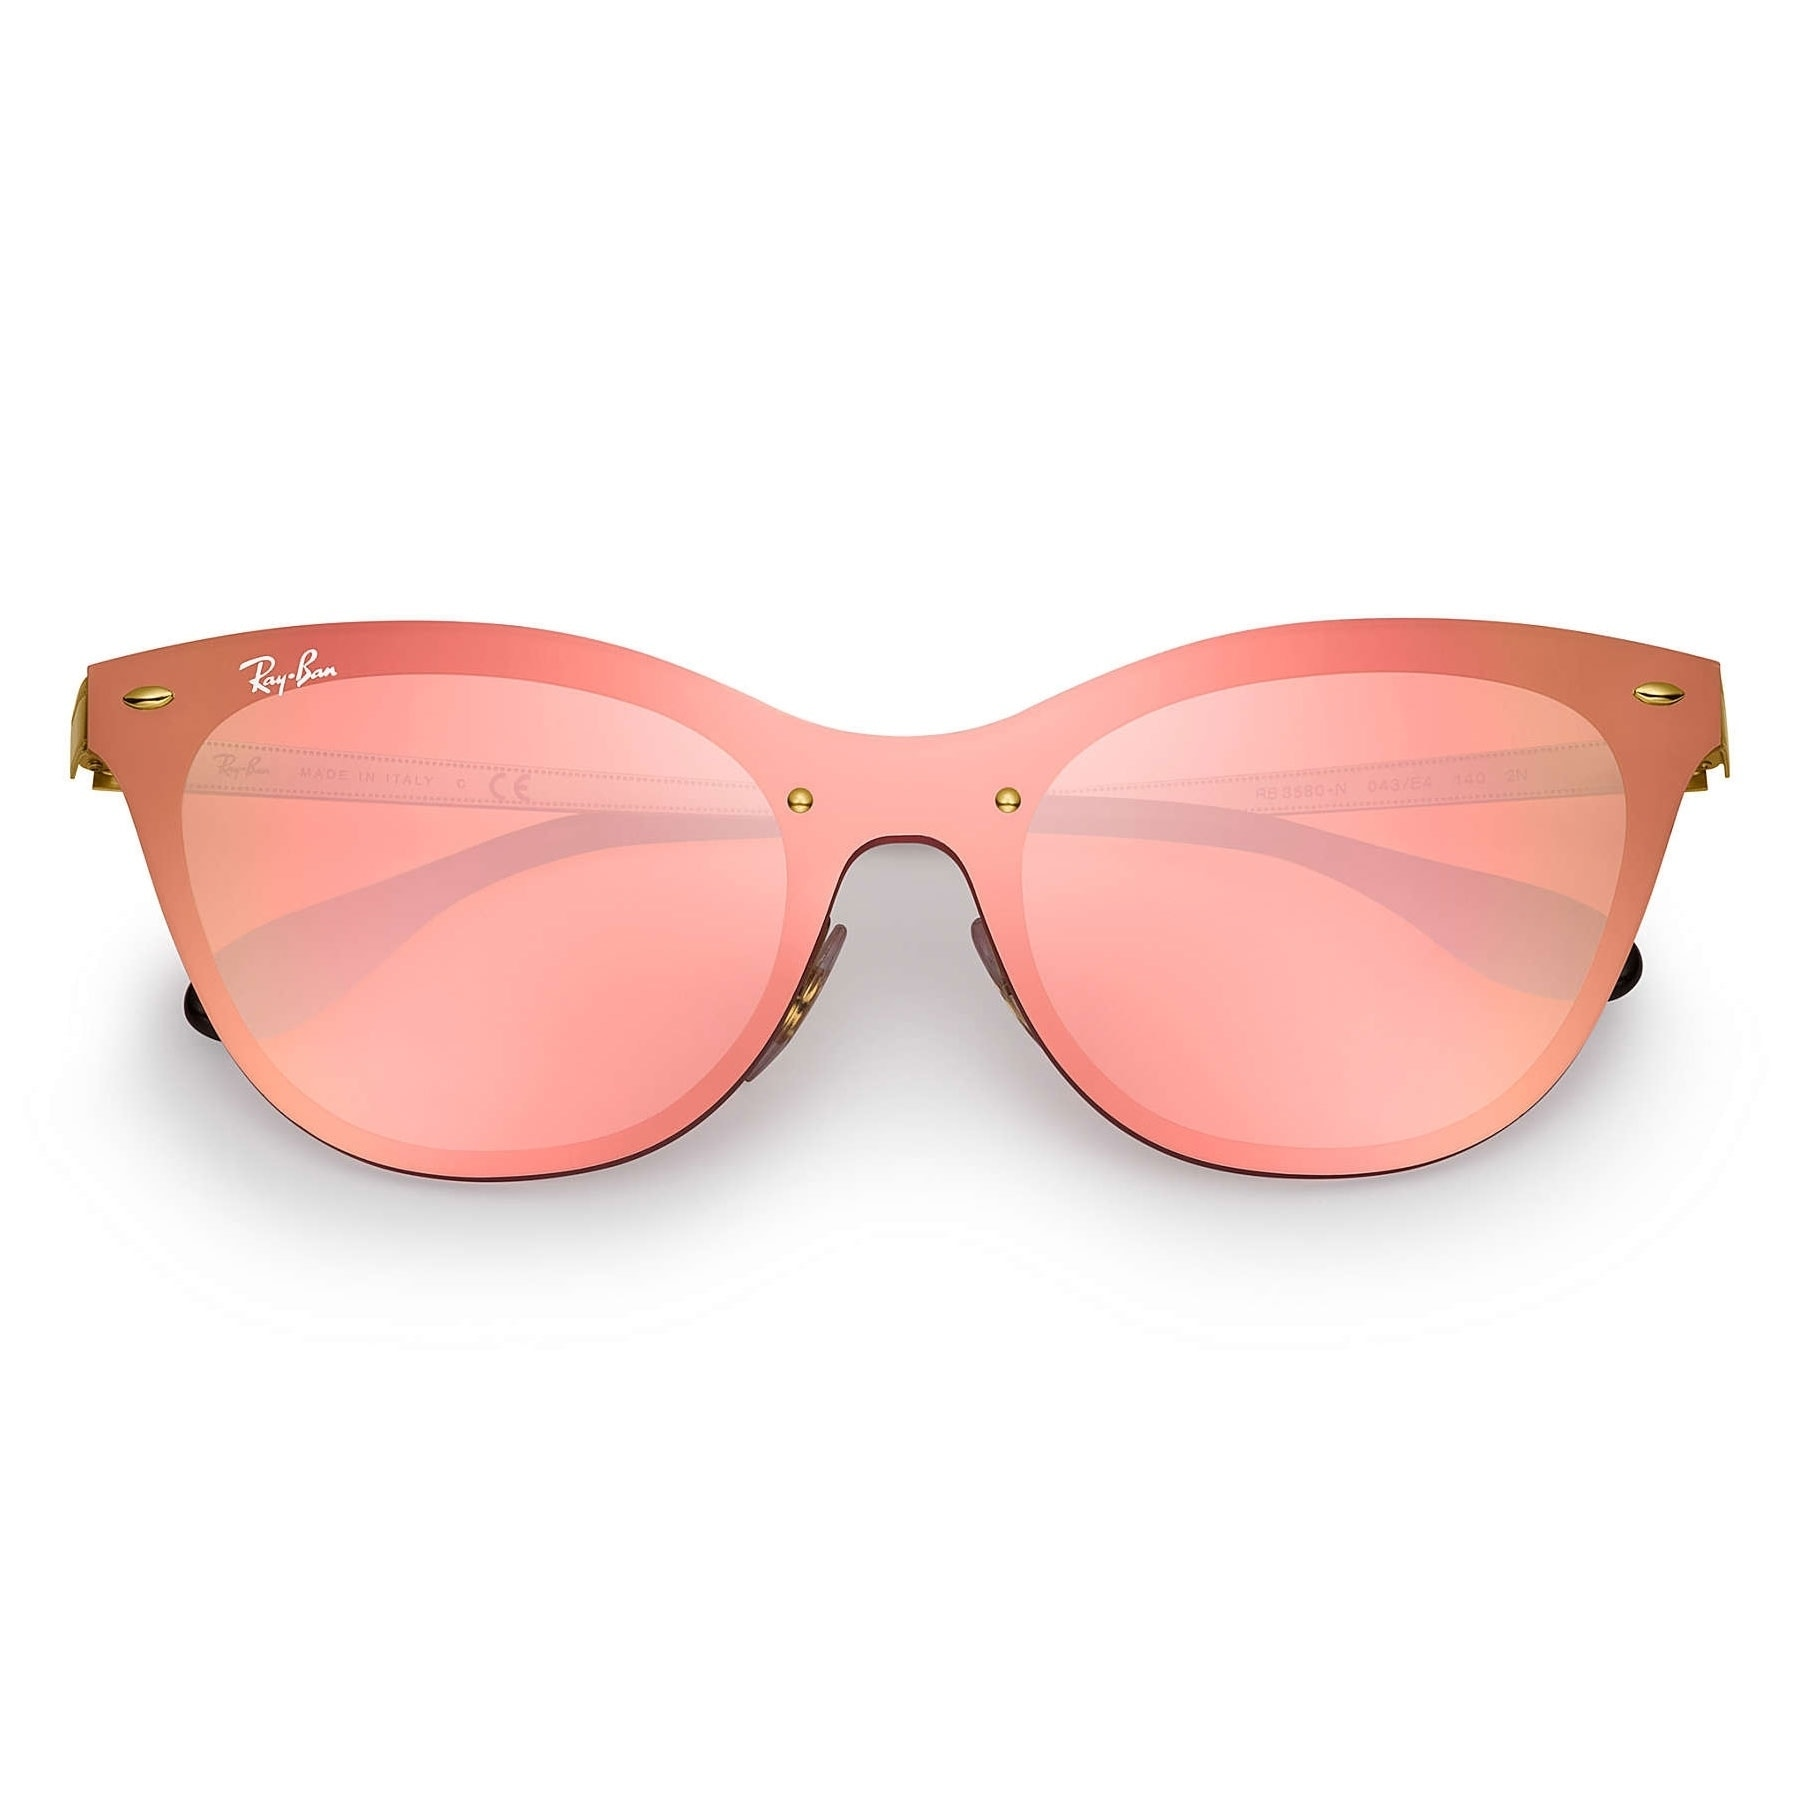 7711624ce9 Shop Ray-Ban RB3580N Blaze Cat Eye Sunglasses Gold  Pink Mirror 43mm - On  Sale - Free Shipping Today - Overstock - 20603390